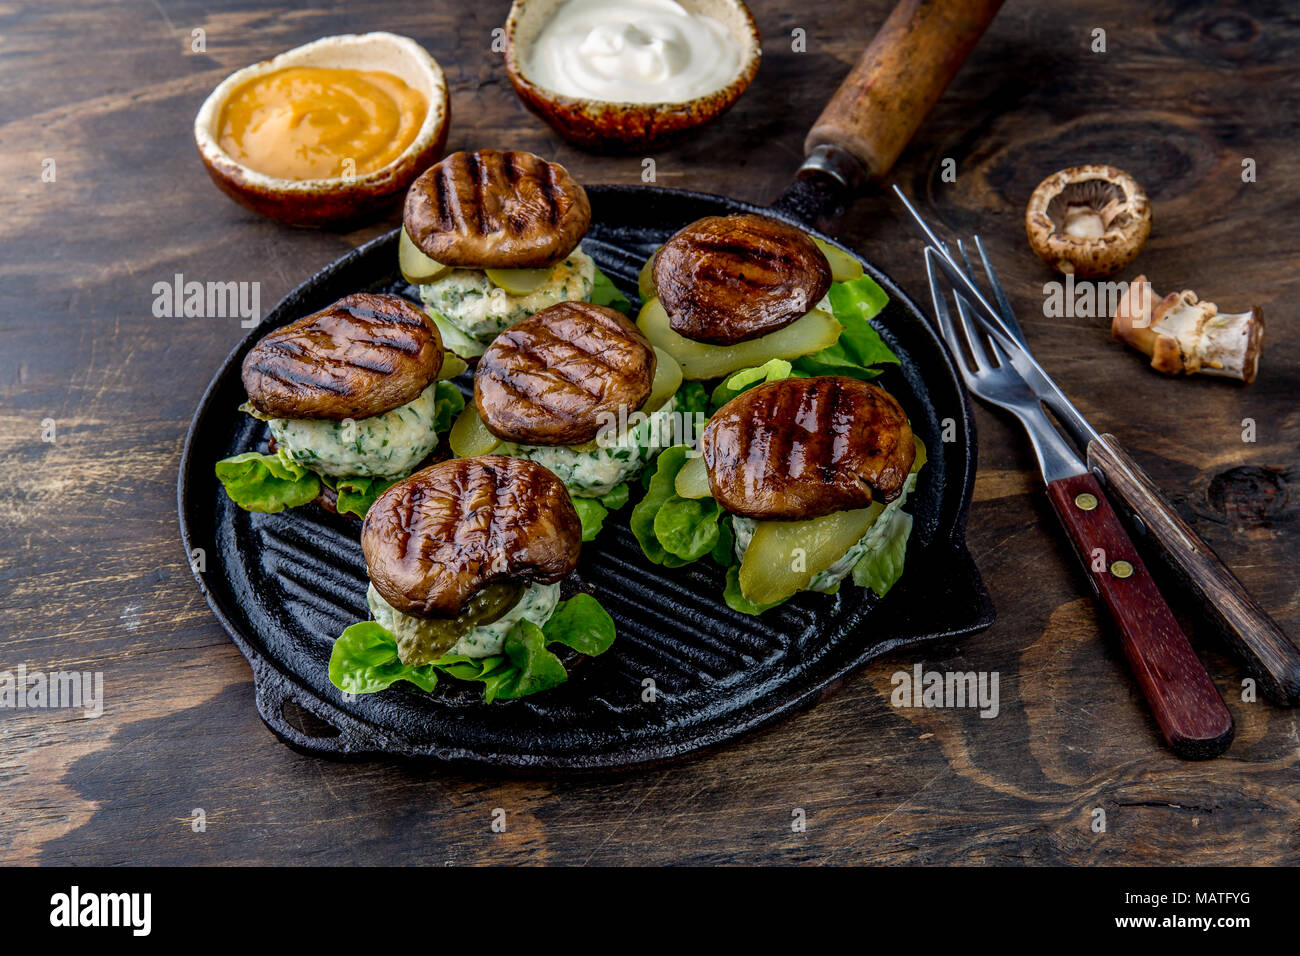 Grilled portobello bun mushroom burgers on cast iron grill pan ob wooden background, top view. Stock Photo